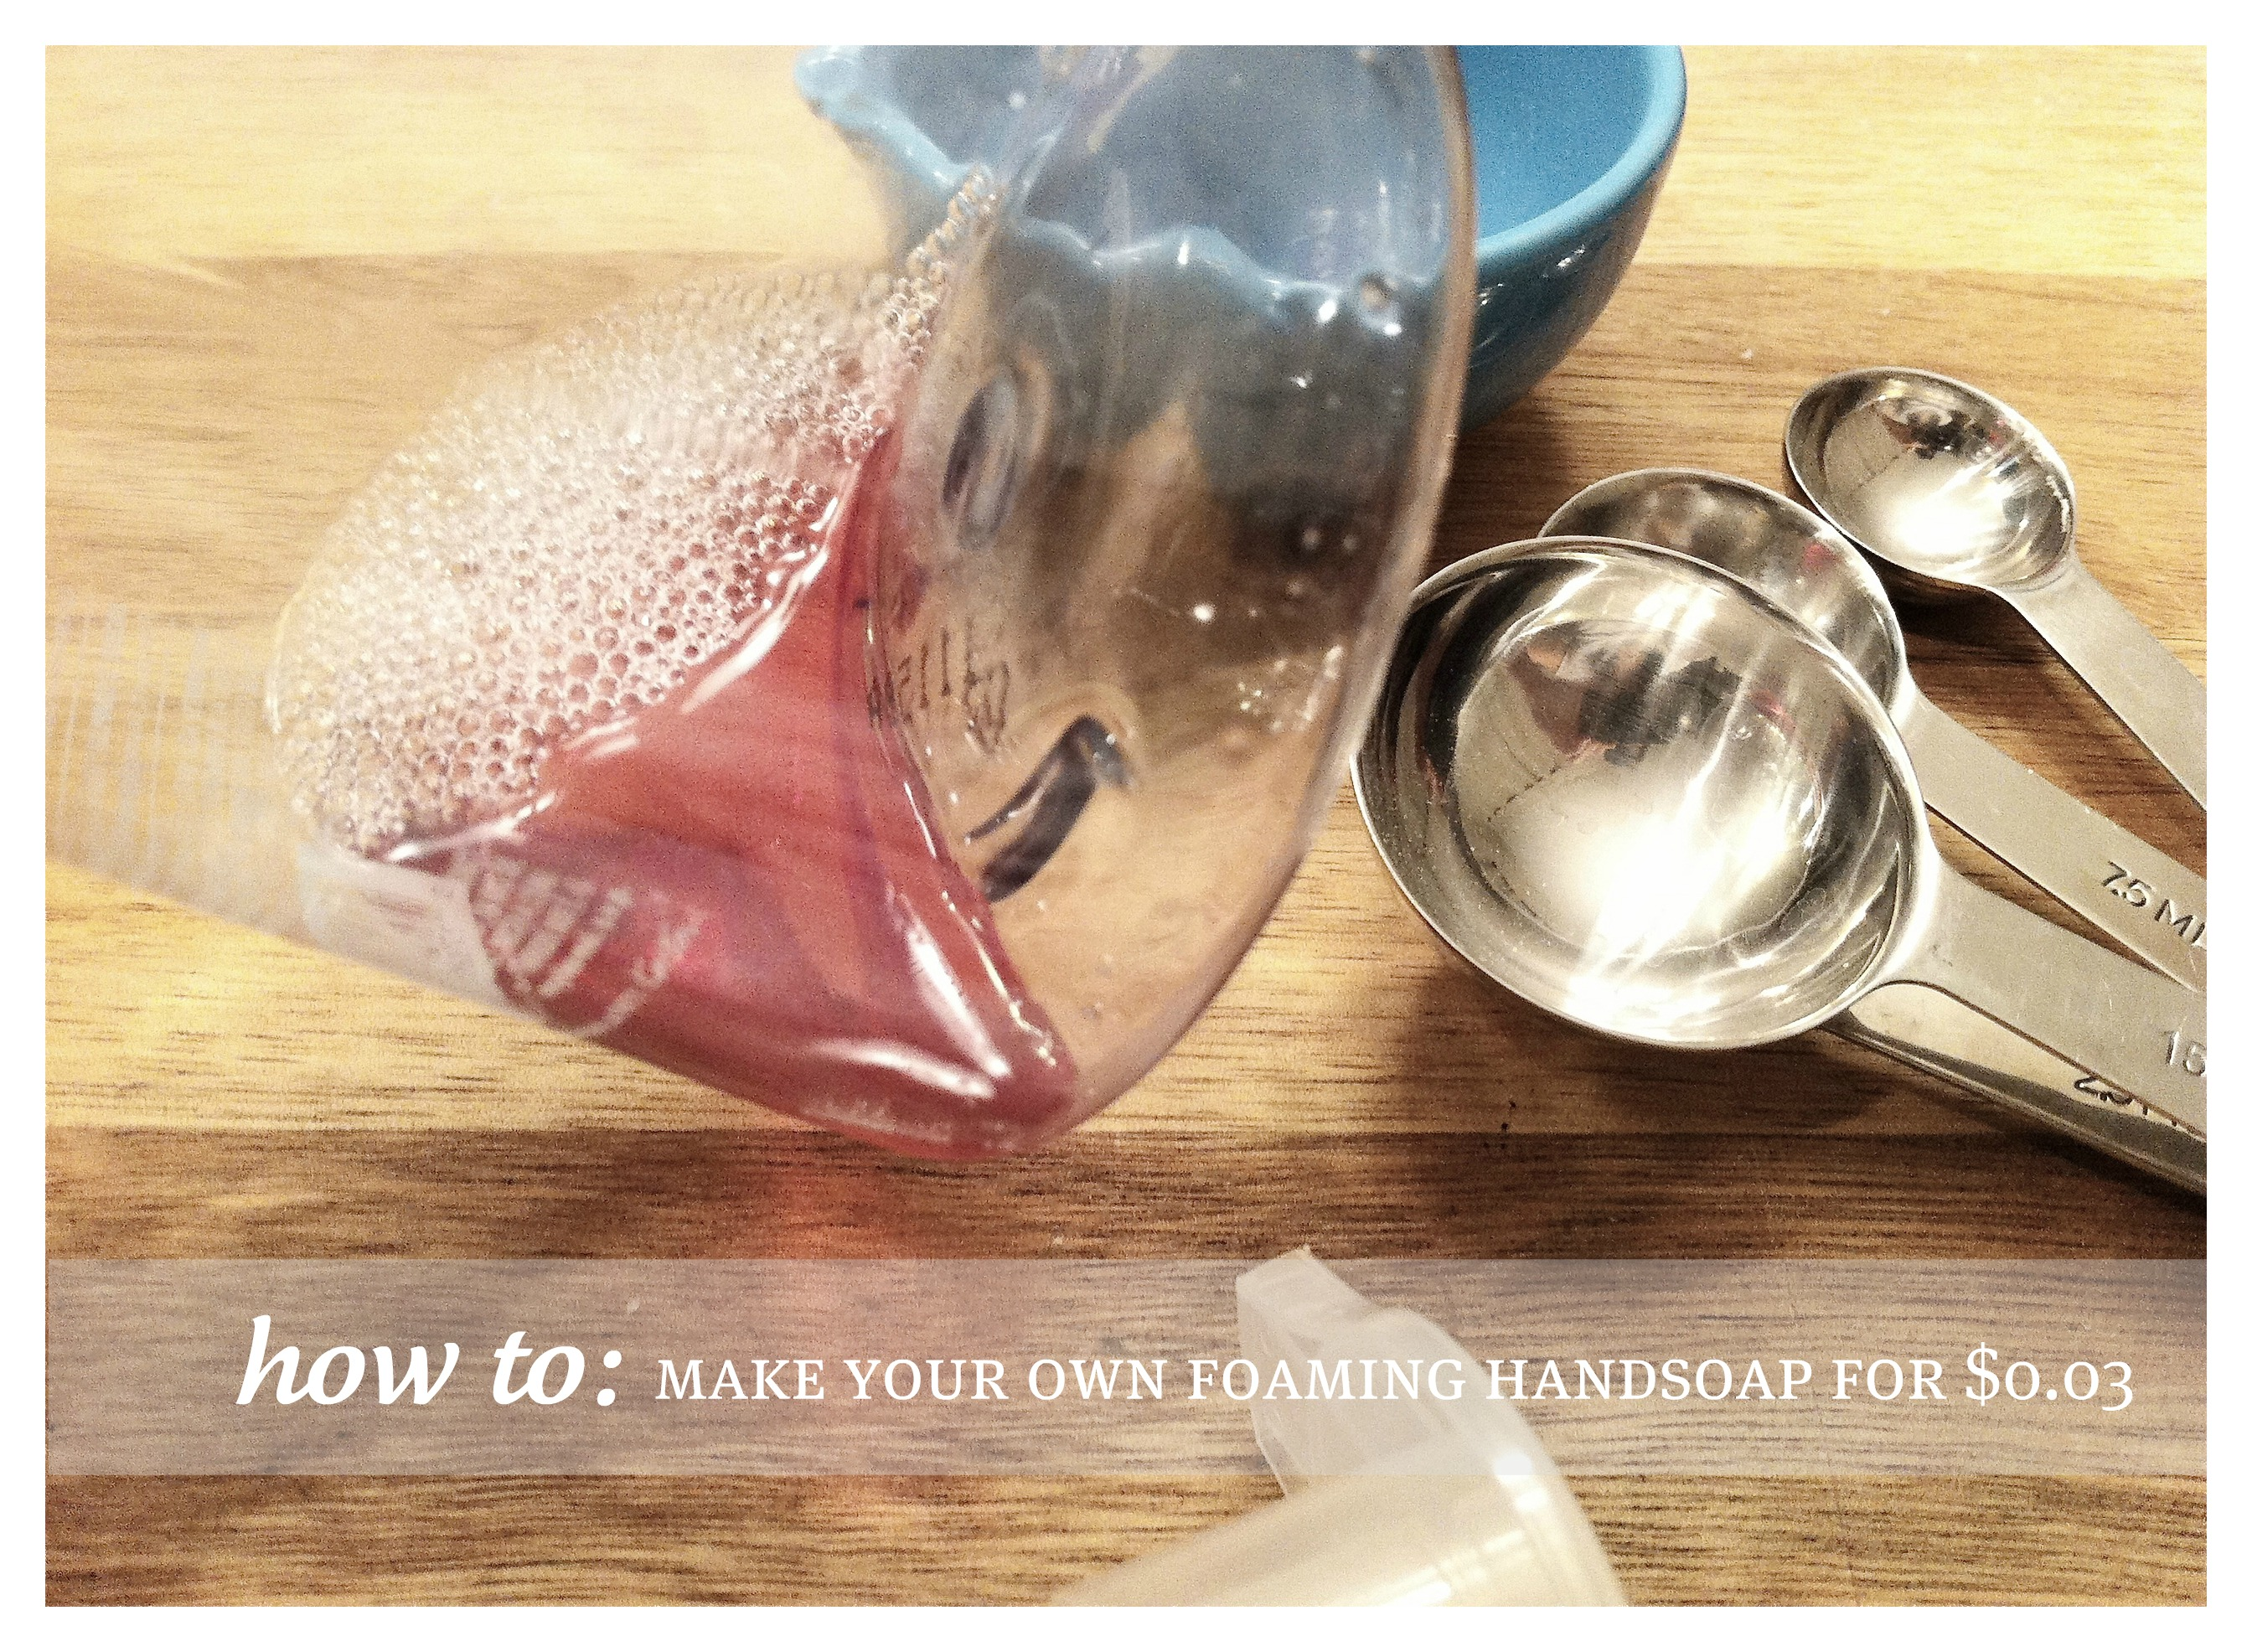 how to: make foaming handsoap for $0.03 skip the chemicals